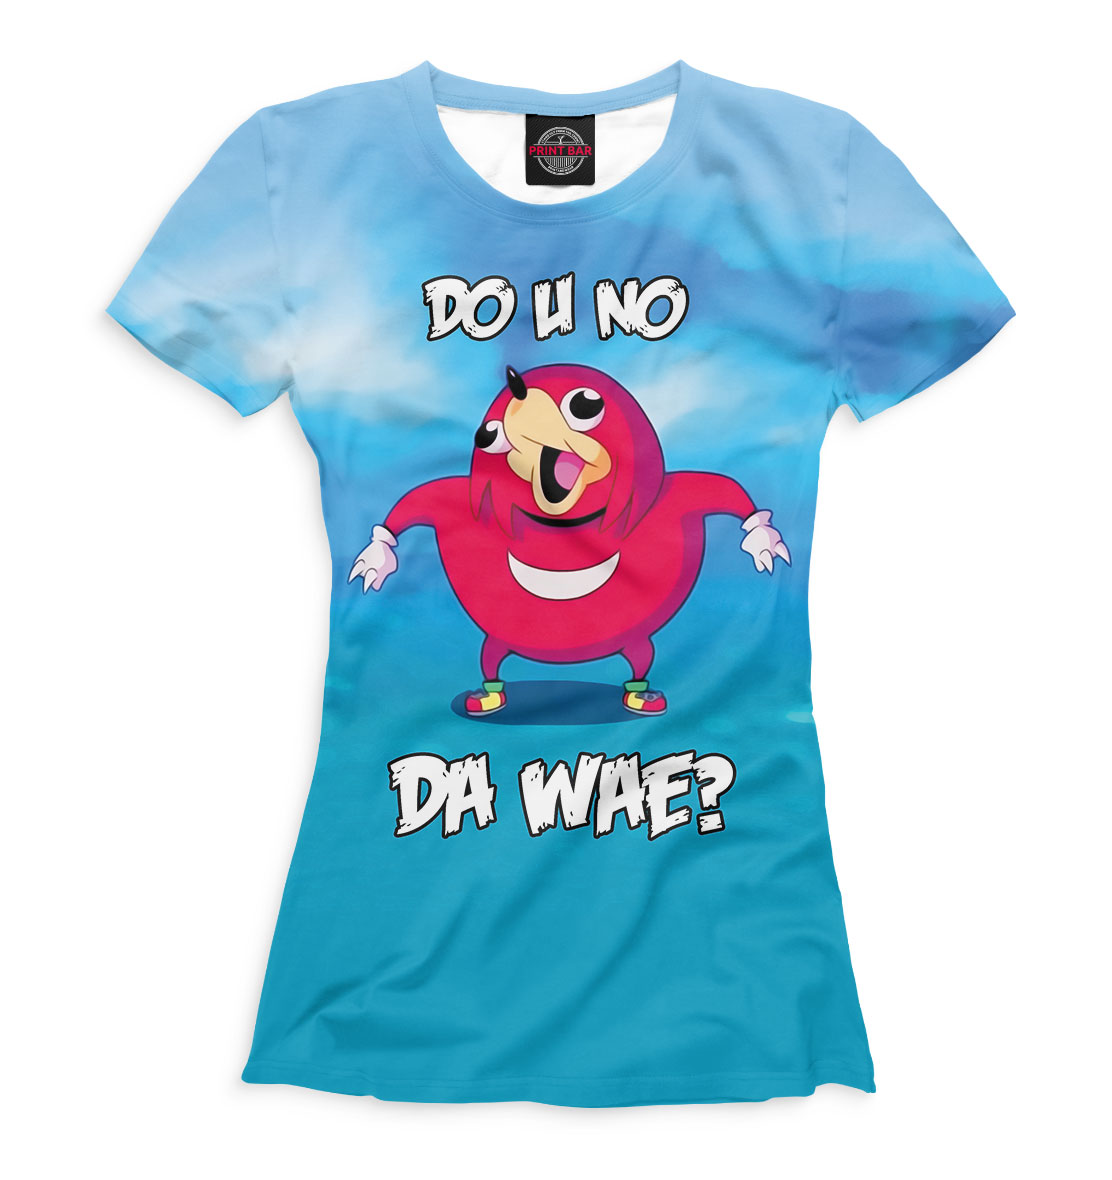 Do u no da wae?